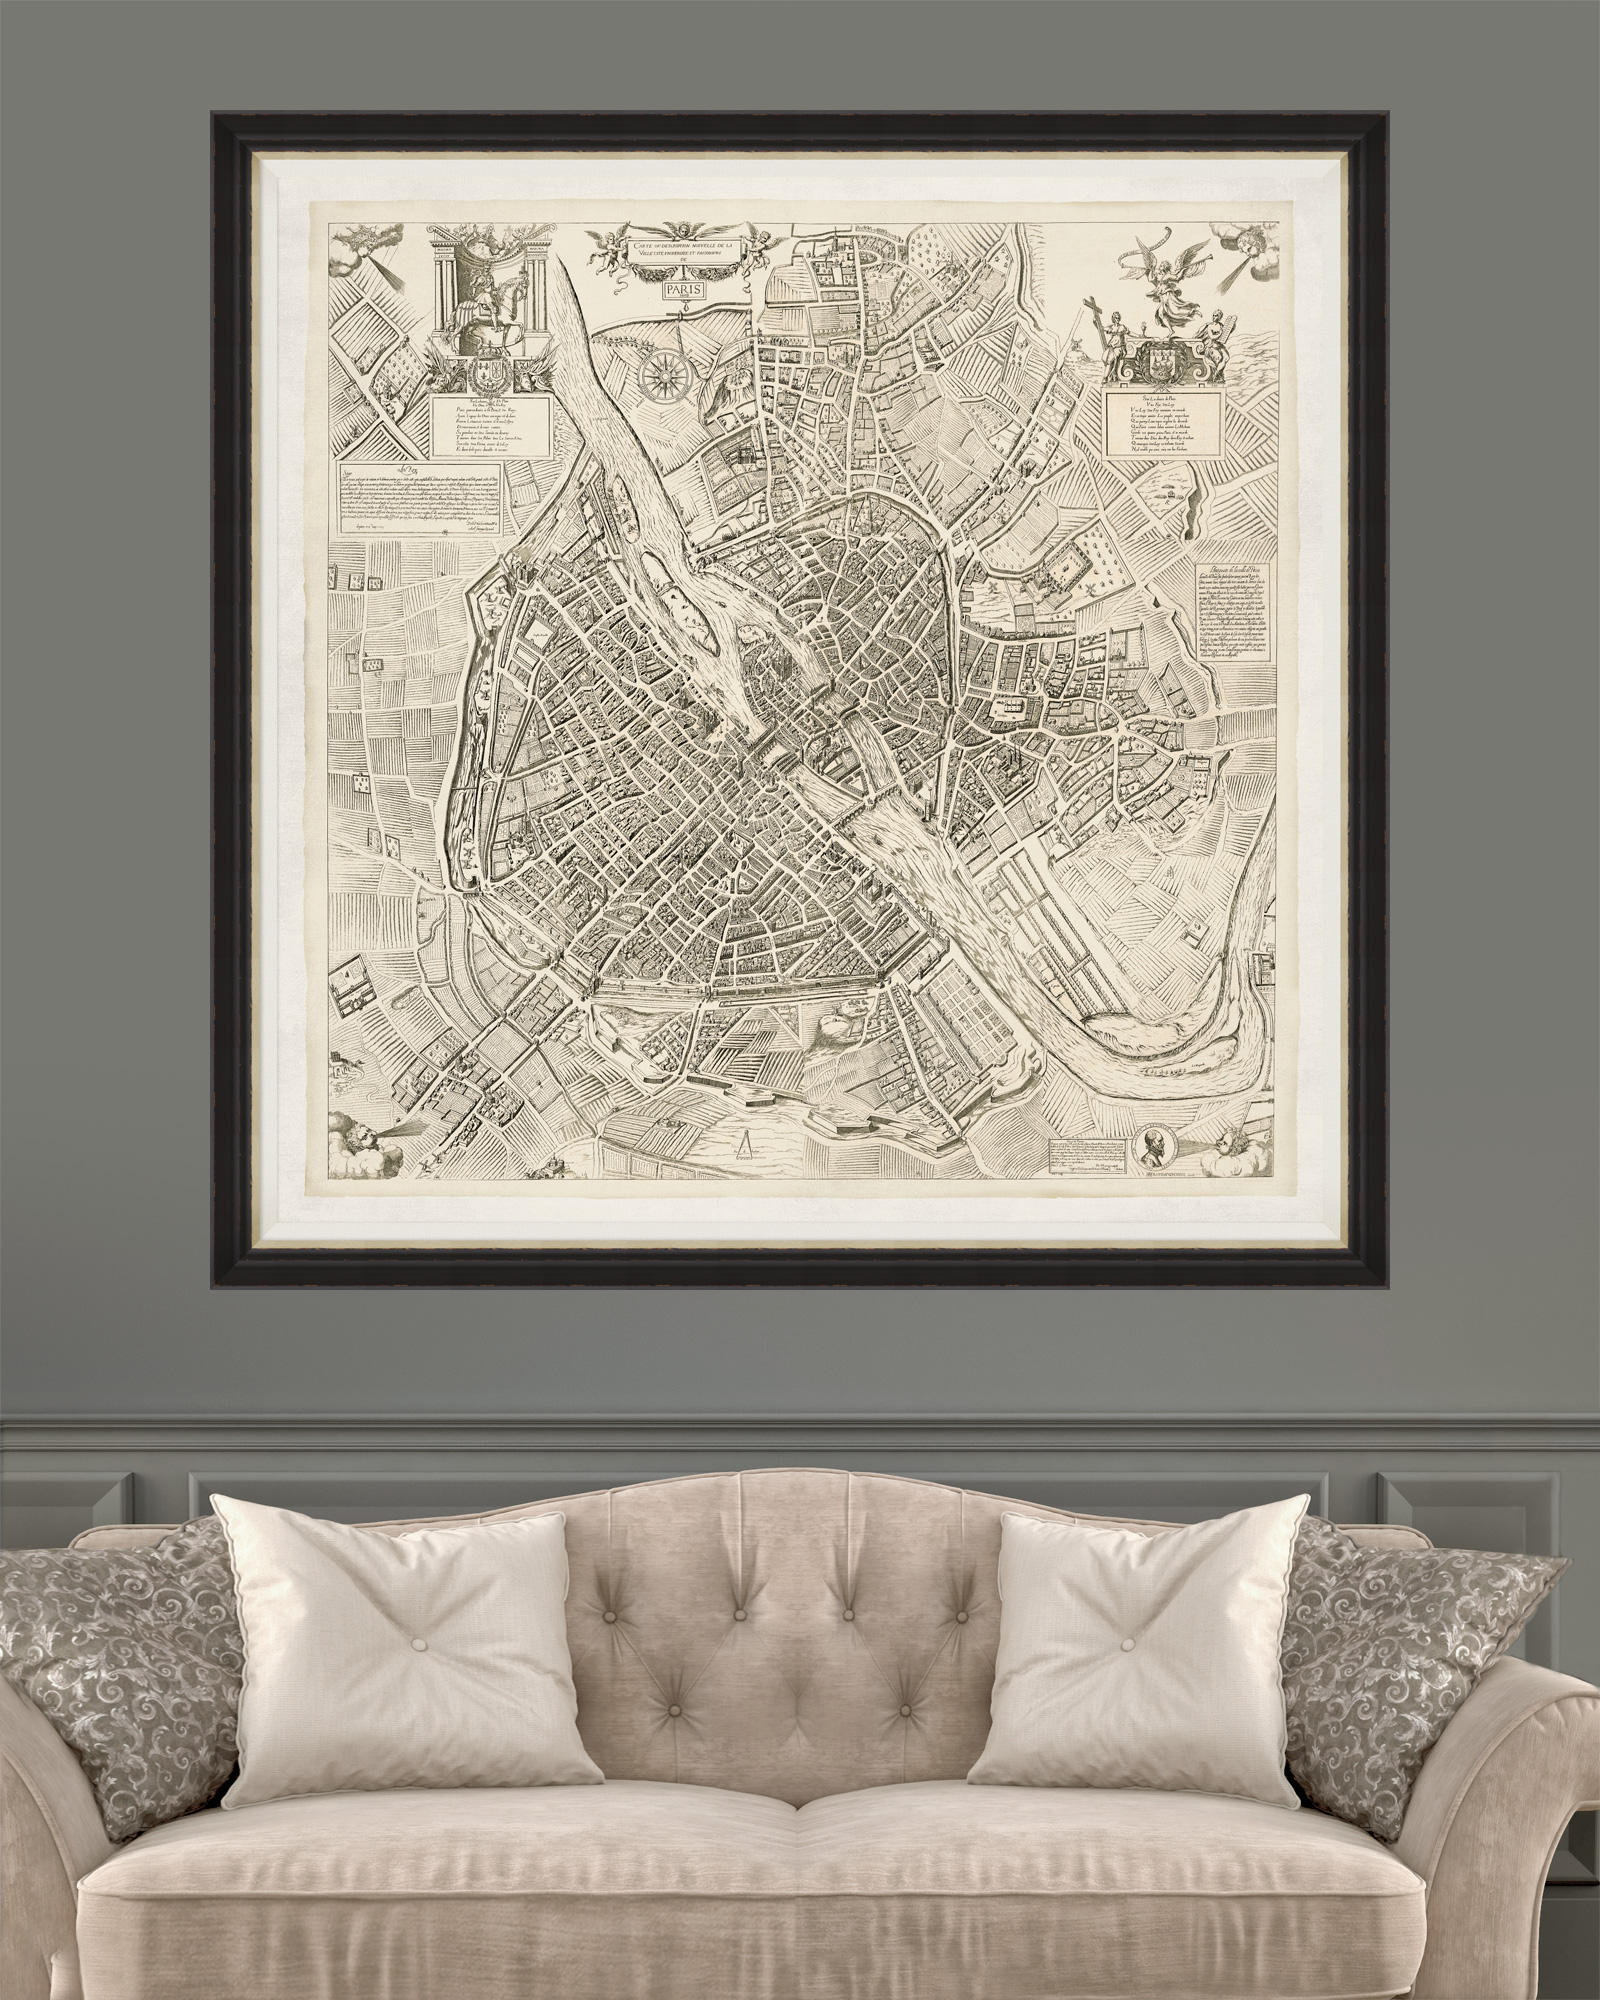 Tablou Framed Art Paris Map 1609